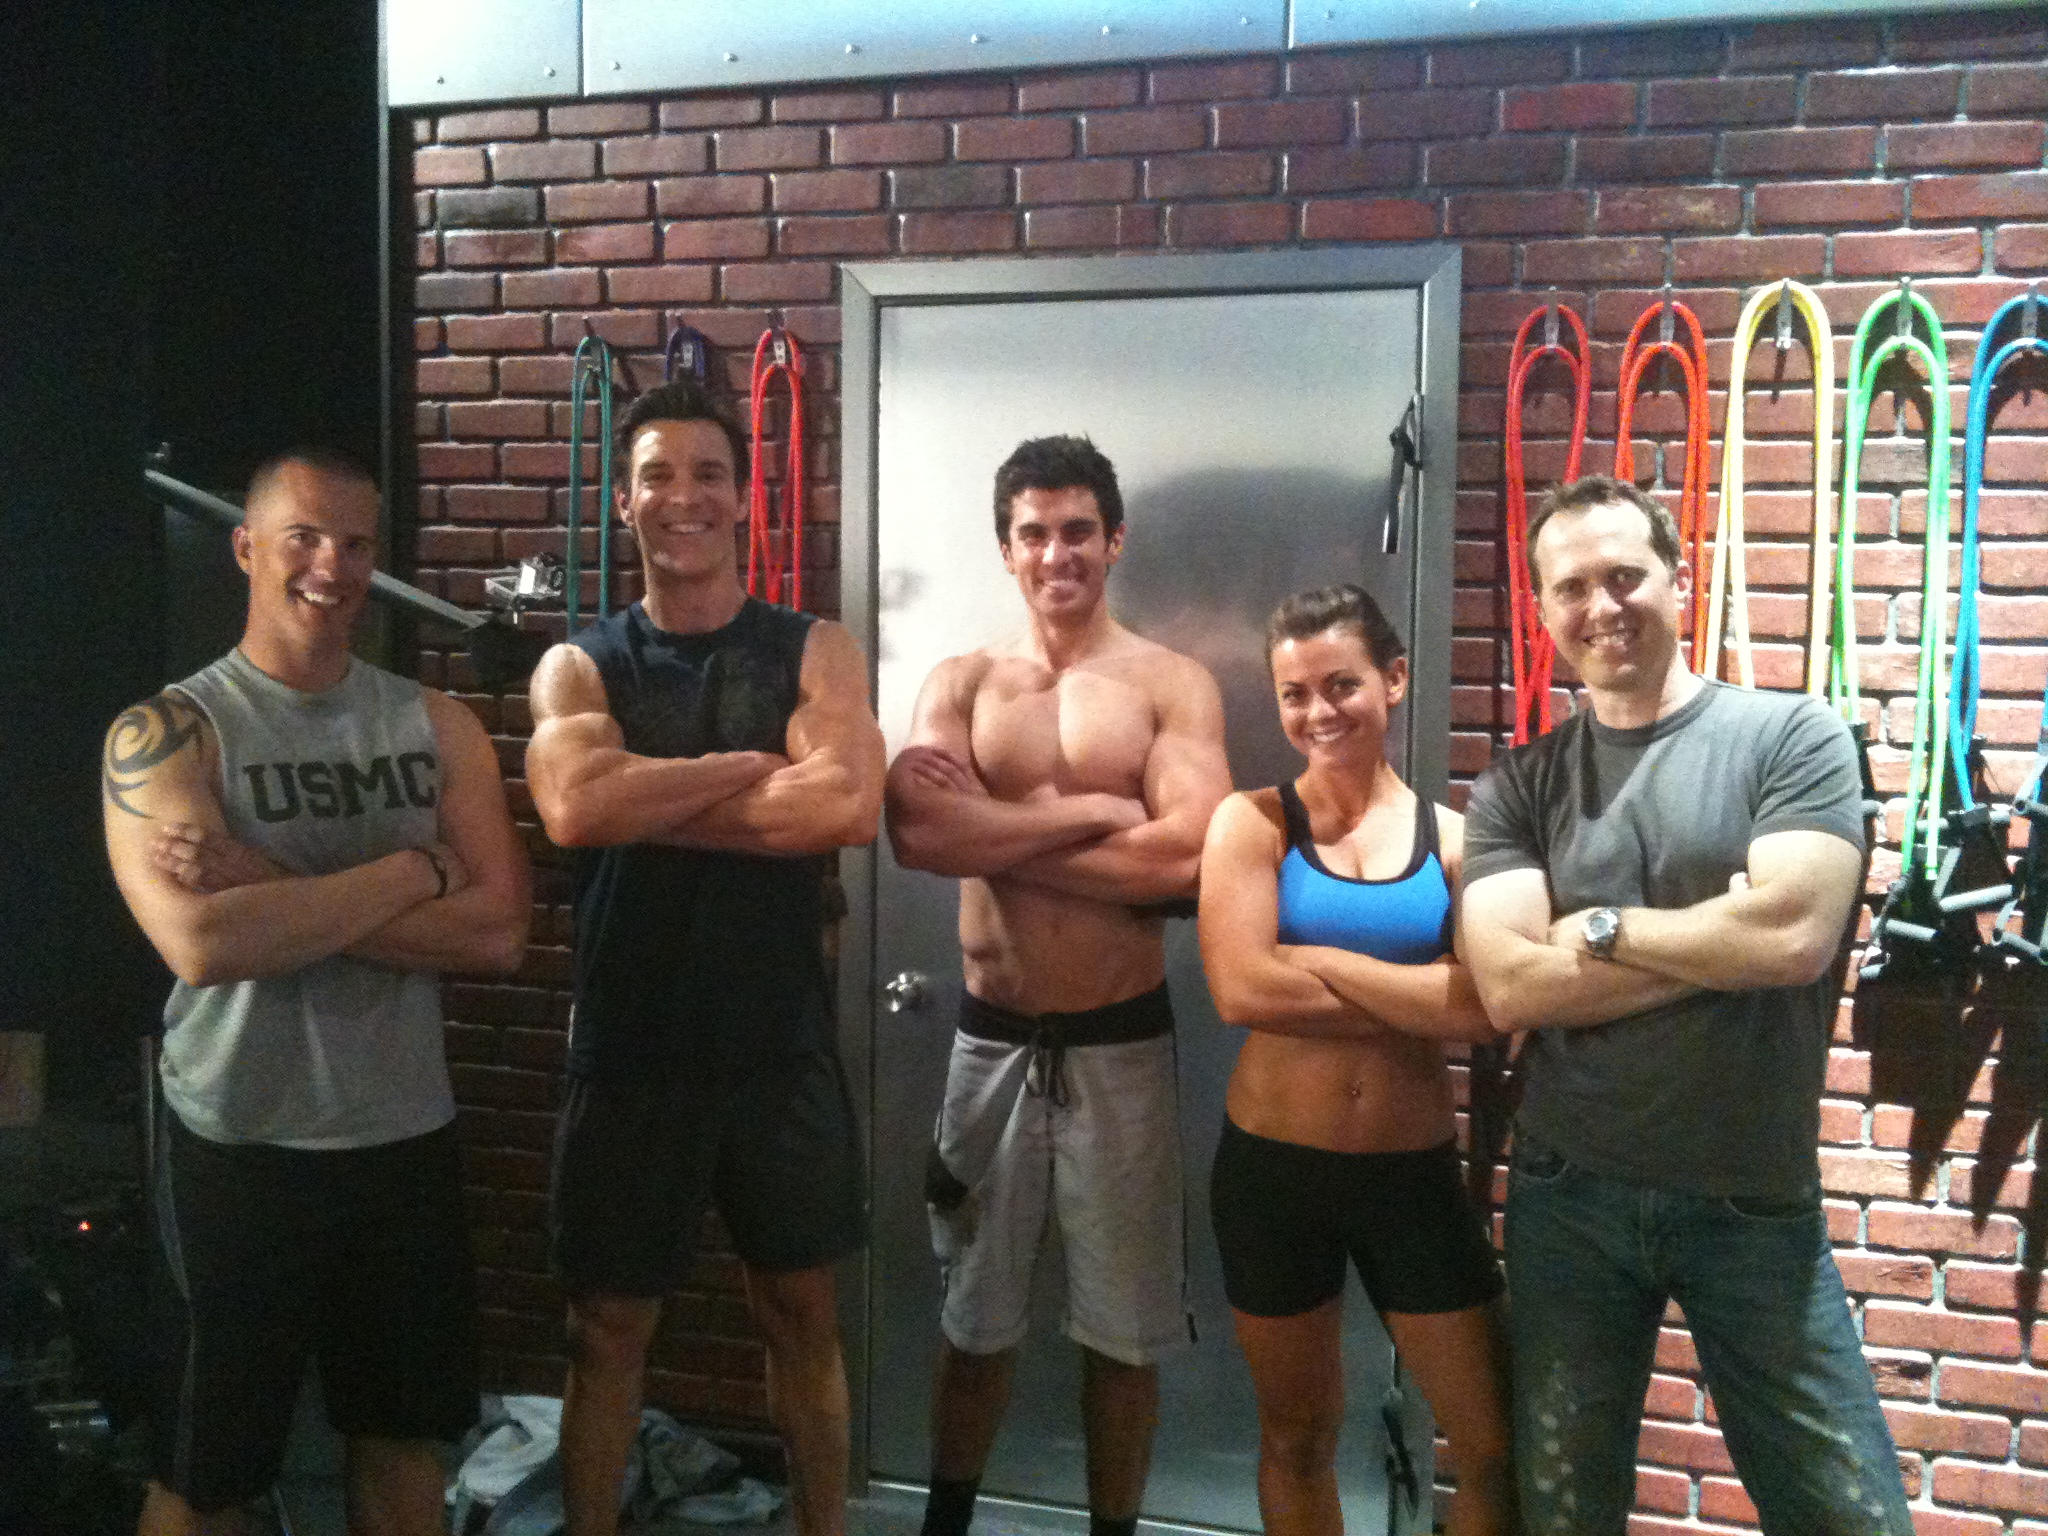 P90X2 Filming Get Ripped At Home